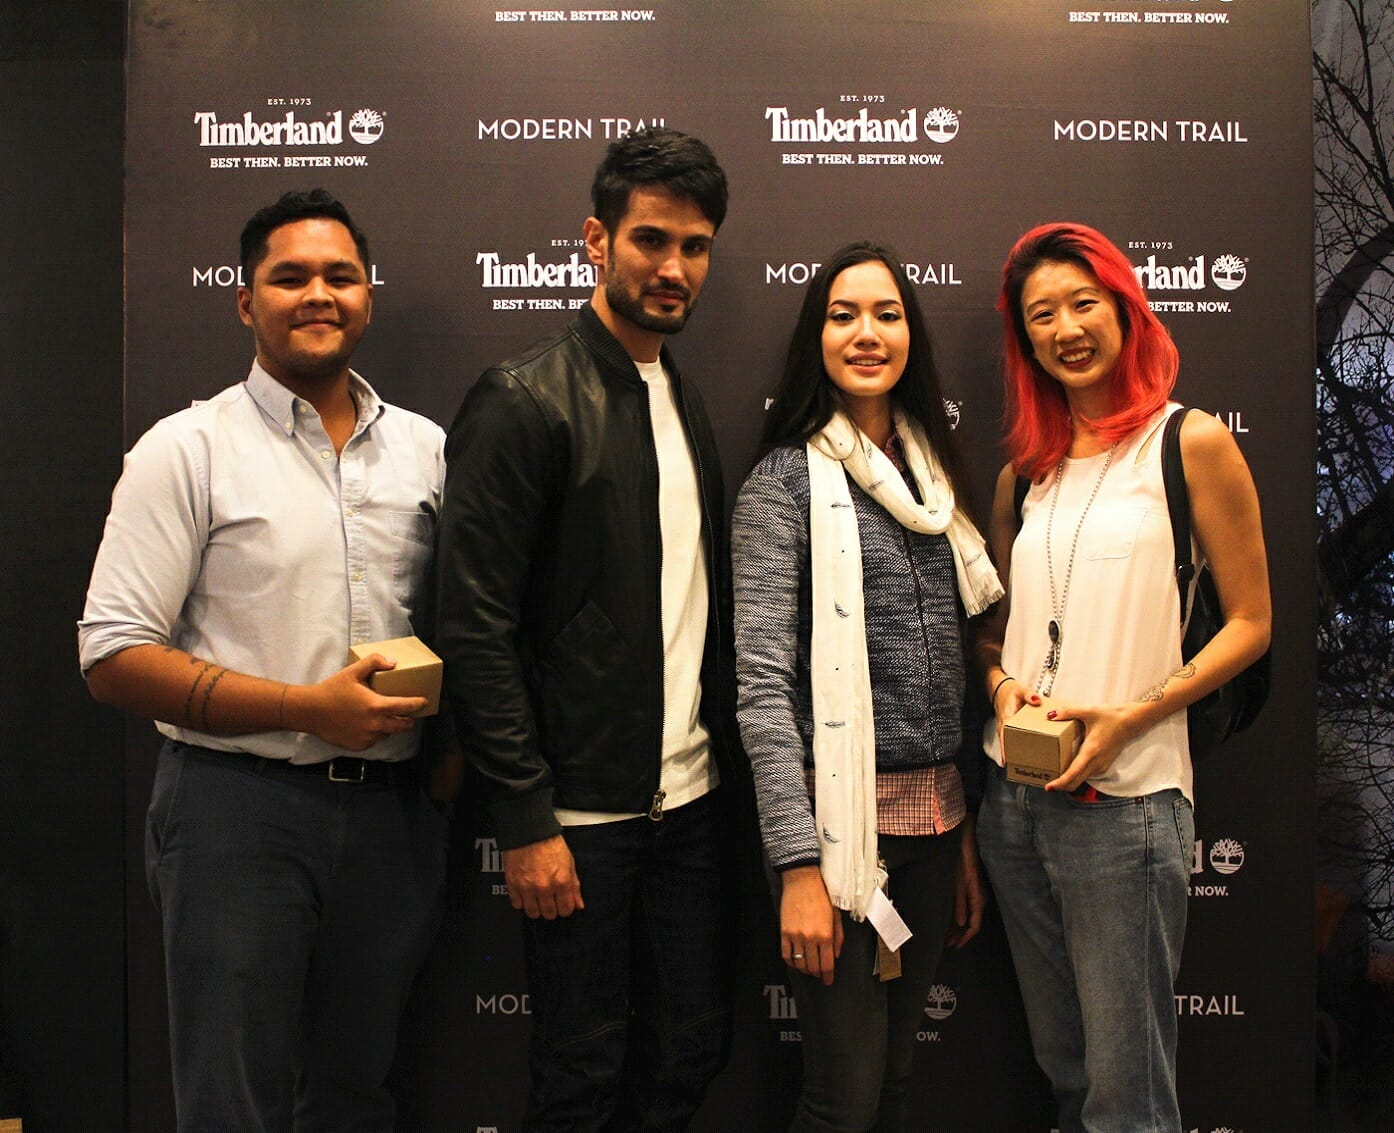 Thank you Timberland for having me!